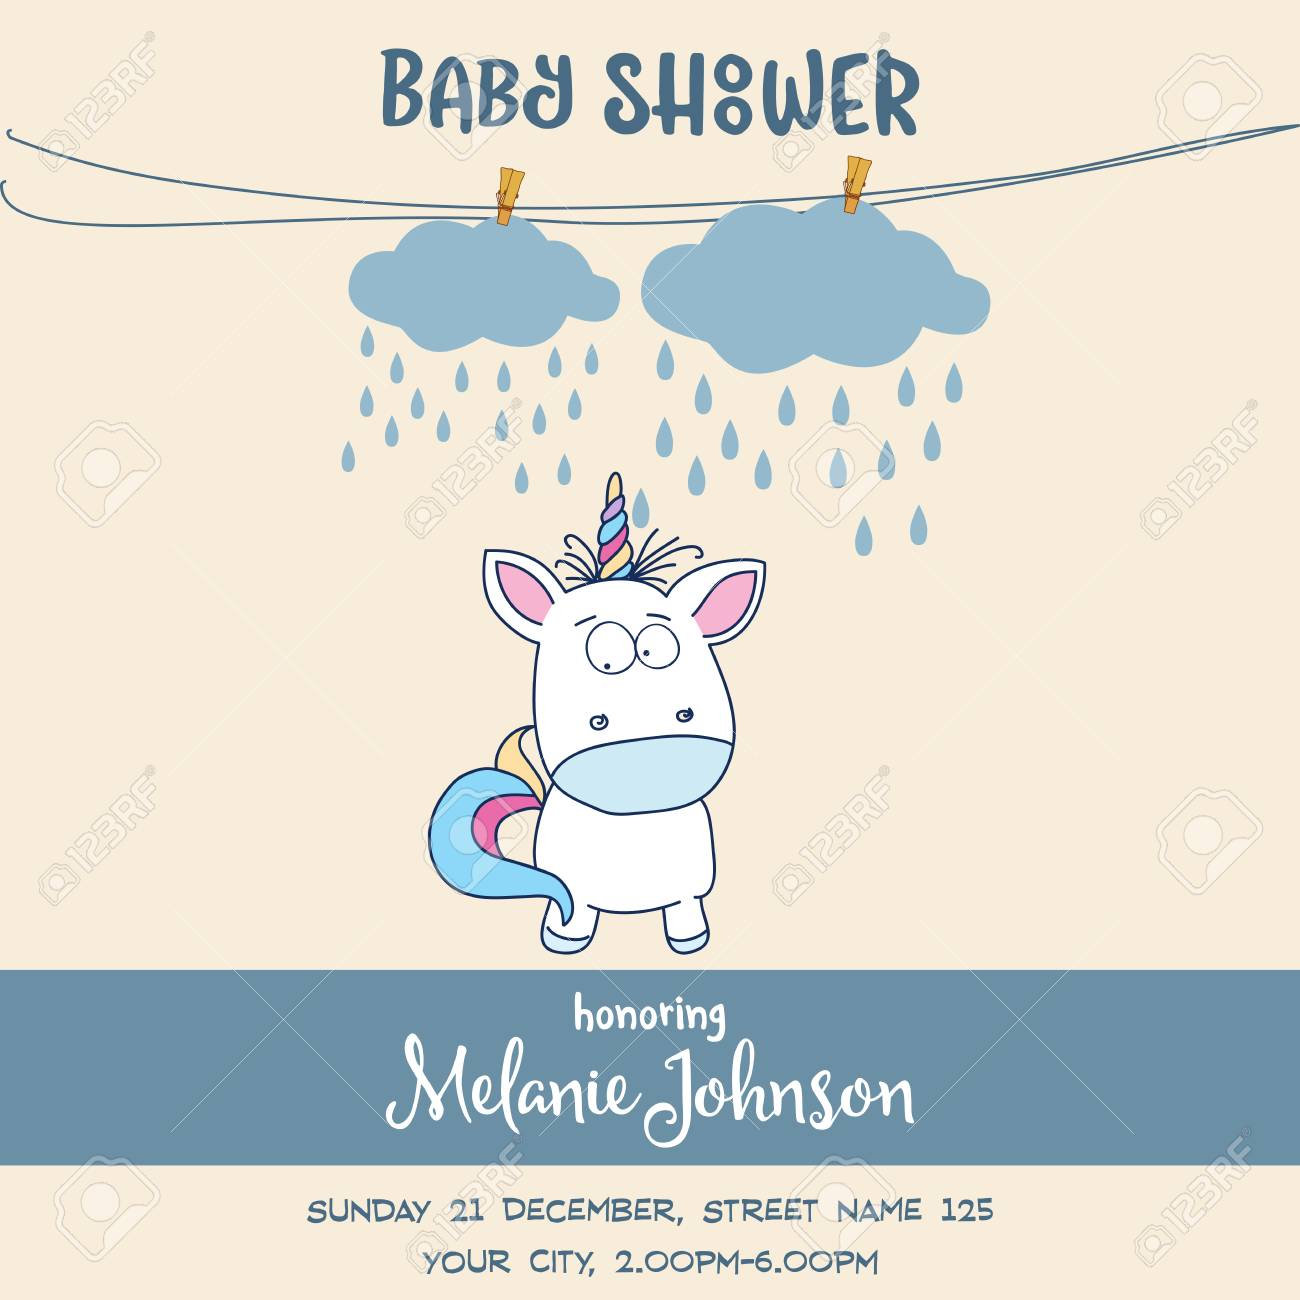 Baby Shower Card Template   Beautiful Baby Shower Card Template With Lovely Baby Unicorn